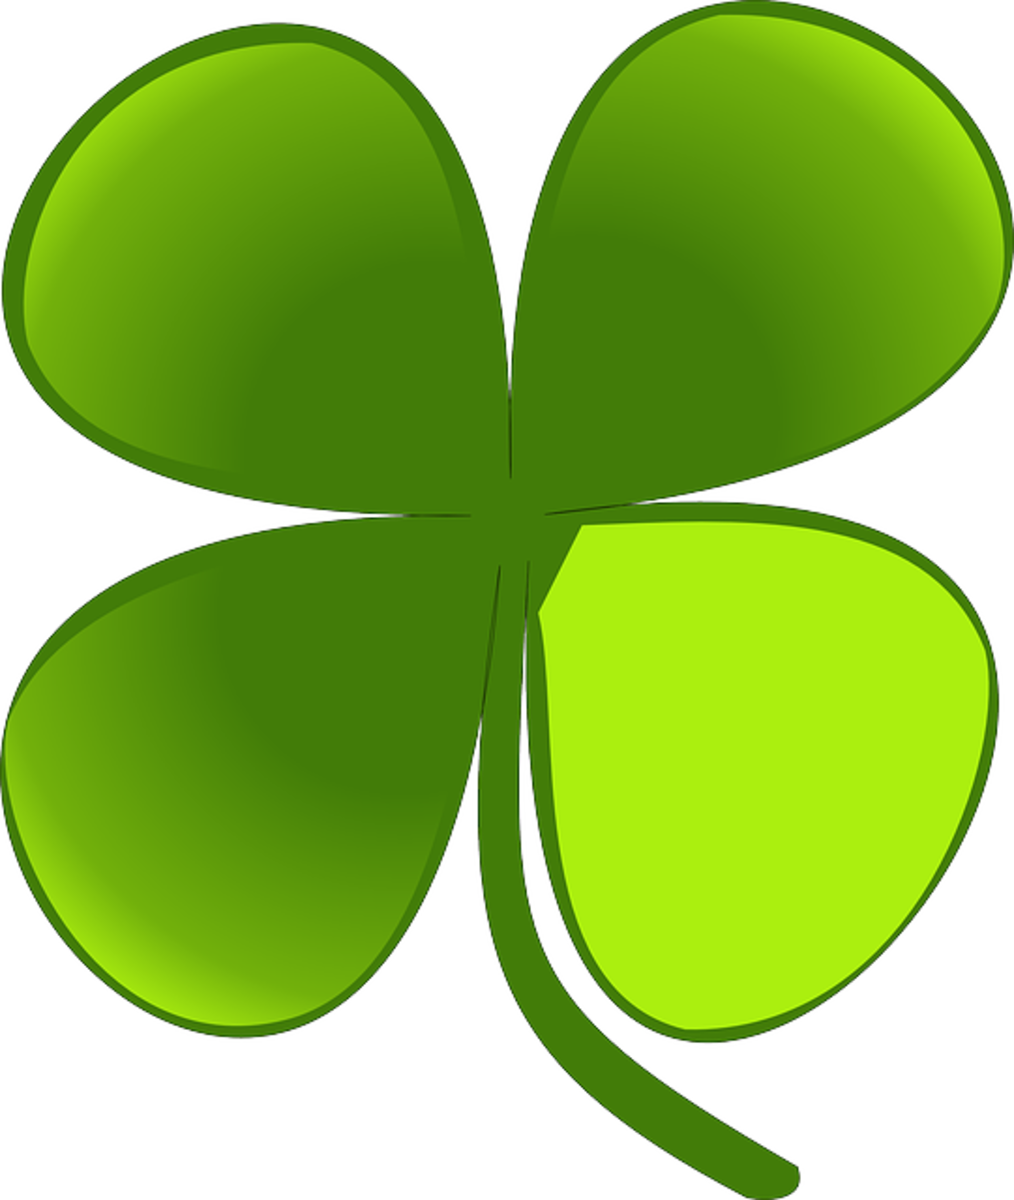 Lime Green Four-Leaf Clover